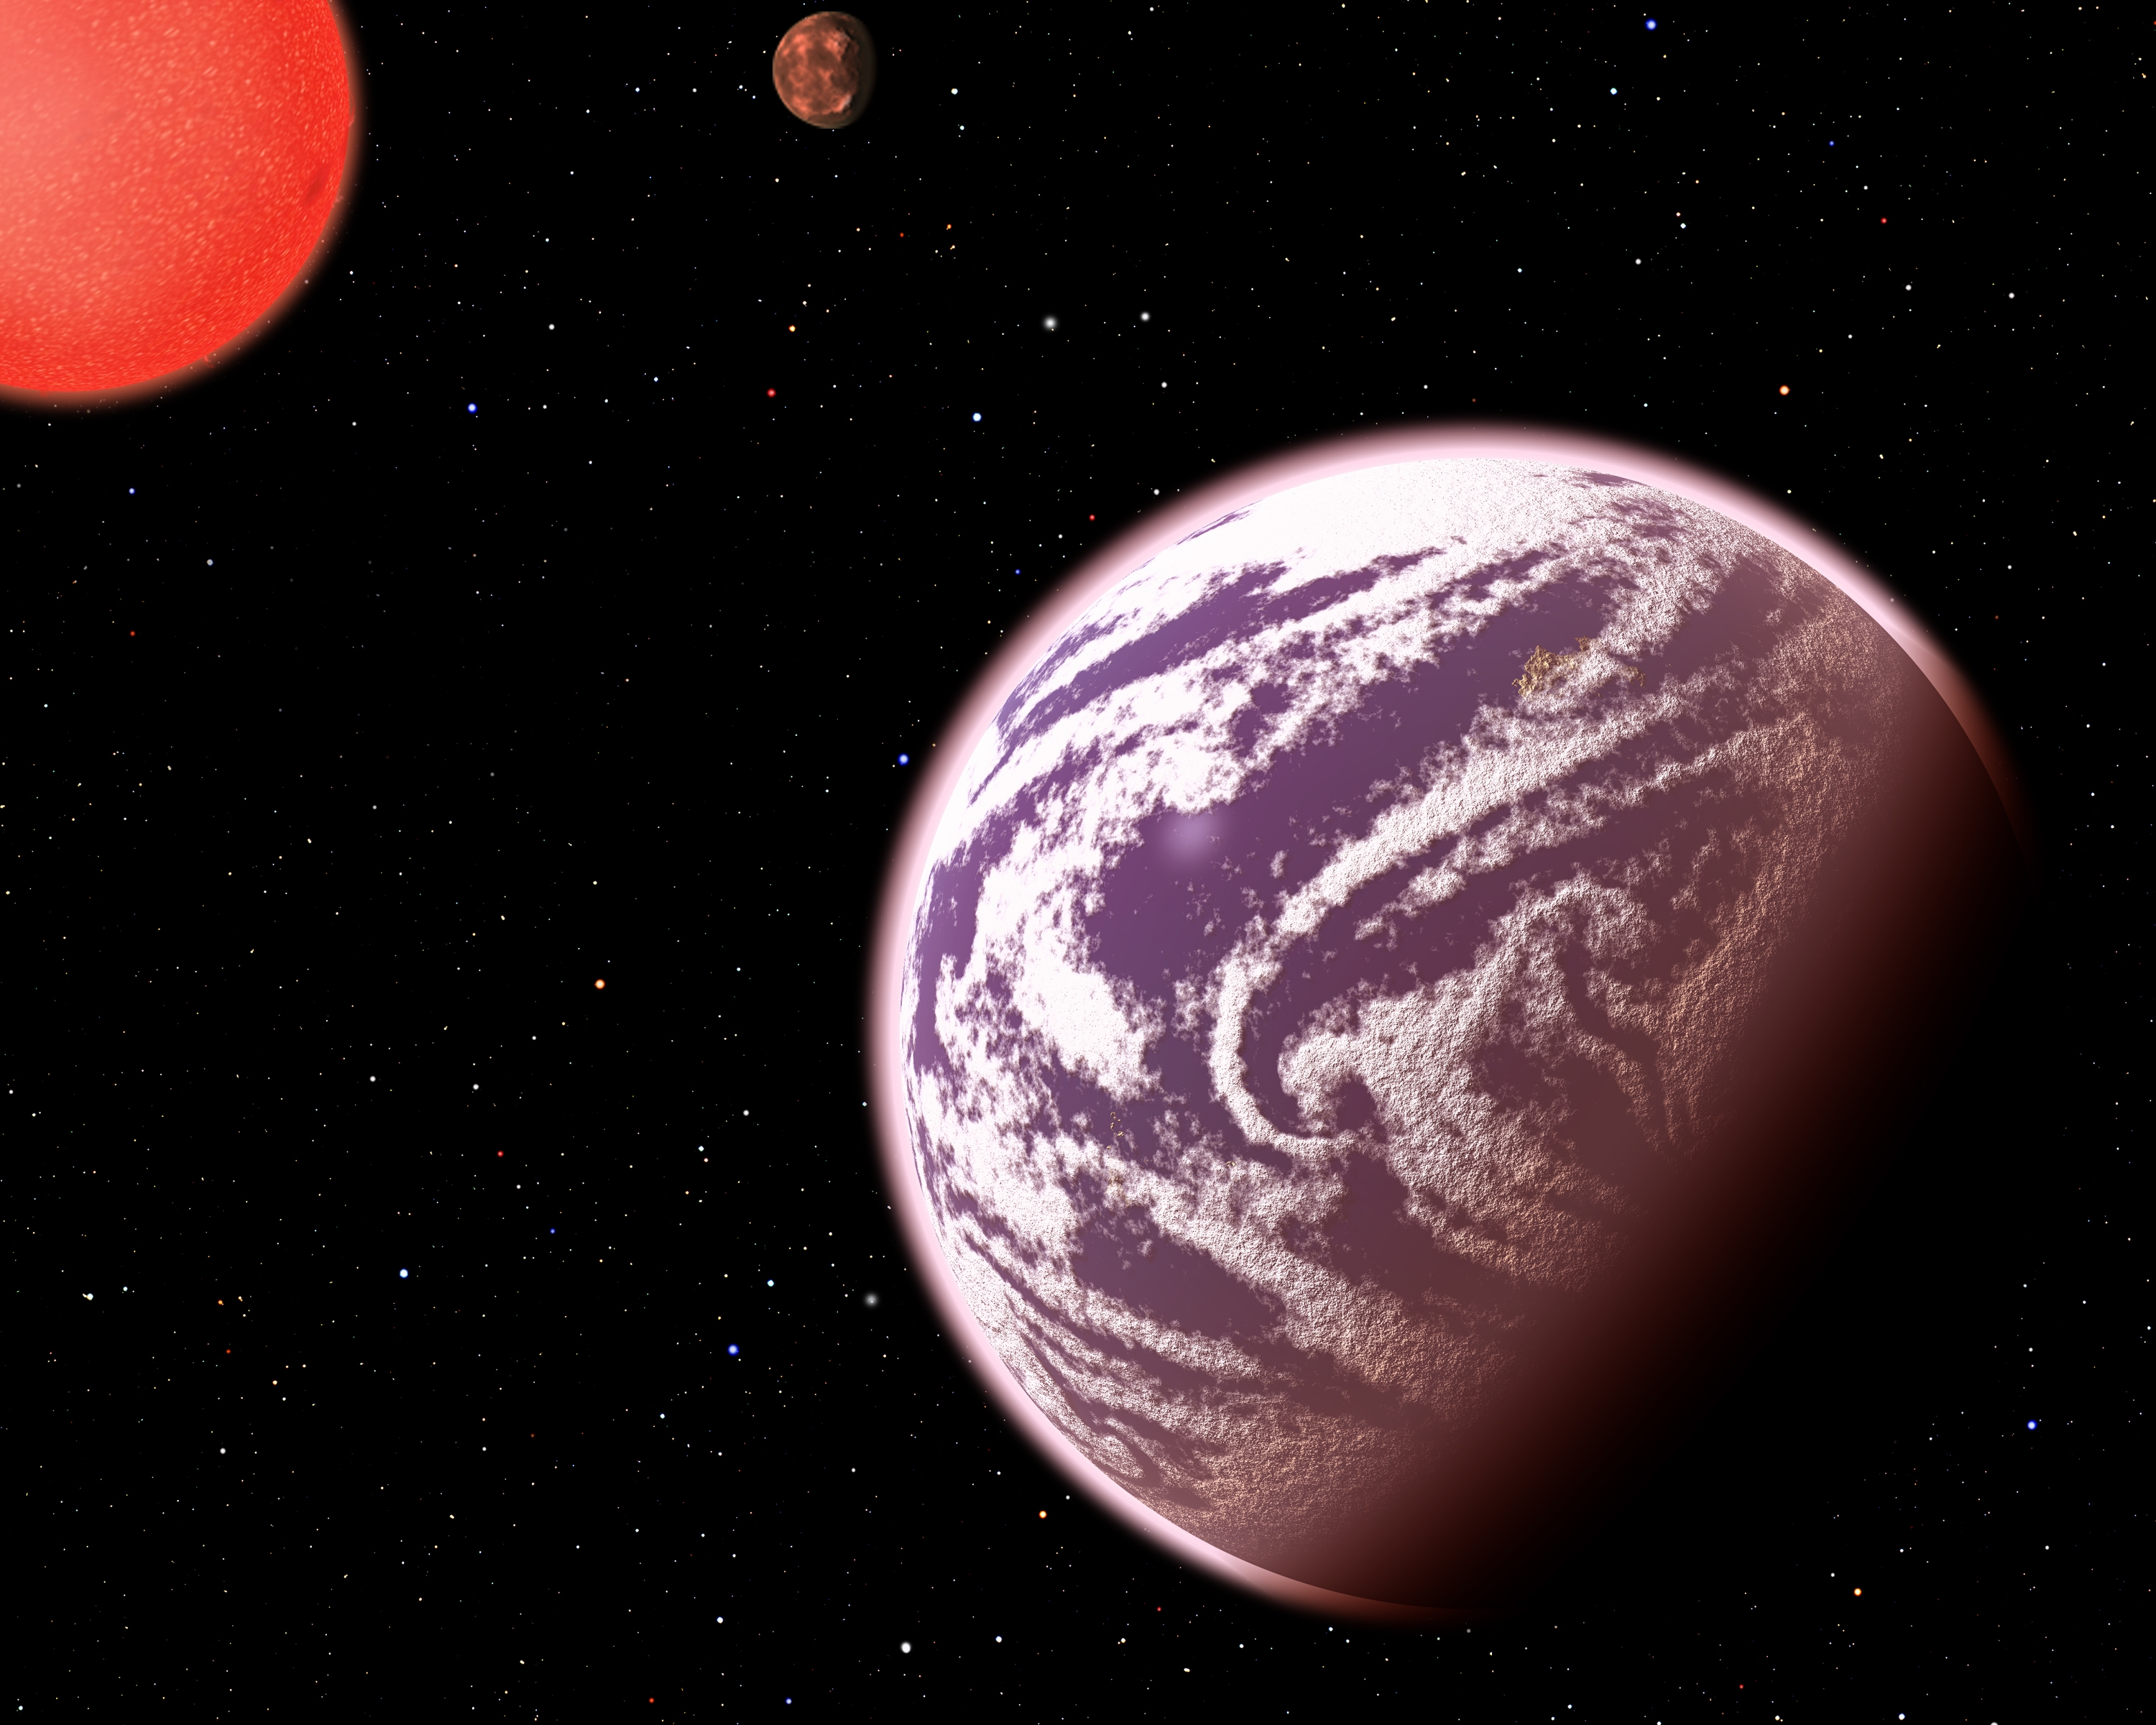 Earth-Mass Gassy Planet KOI-314c